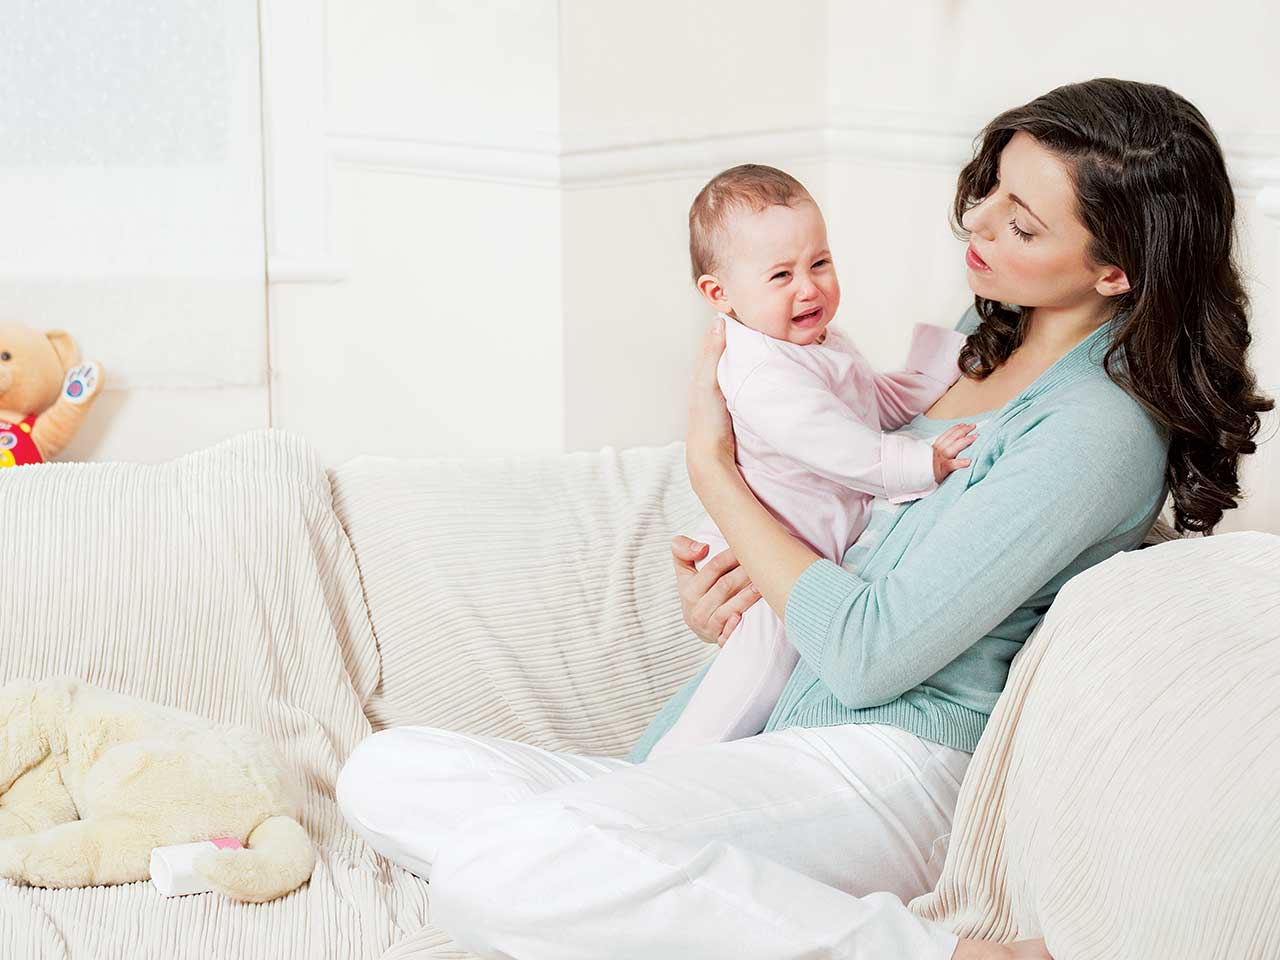 Newborn Infant Normally Suffer From Symptoms And Remedies For Silent Reflux In Babies